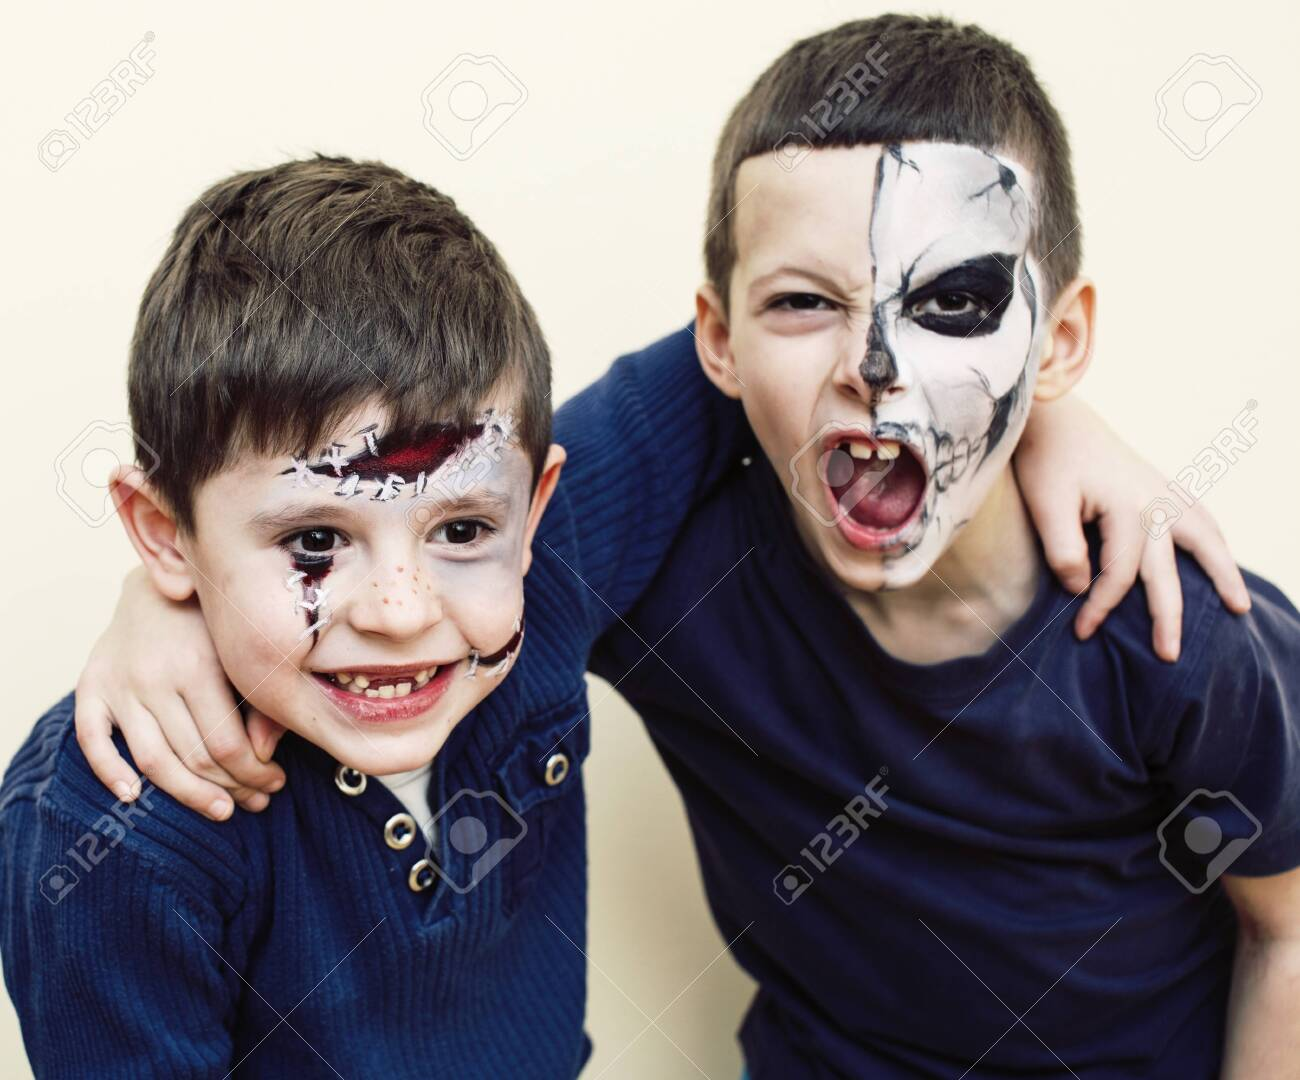 Zombie Apocalypse Kids Concept Birthday Party Celebration Facepaint Stock Photo Picture And Royalty Free Image Image 120782155